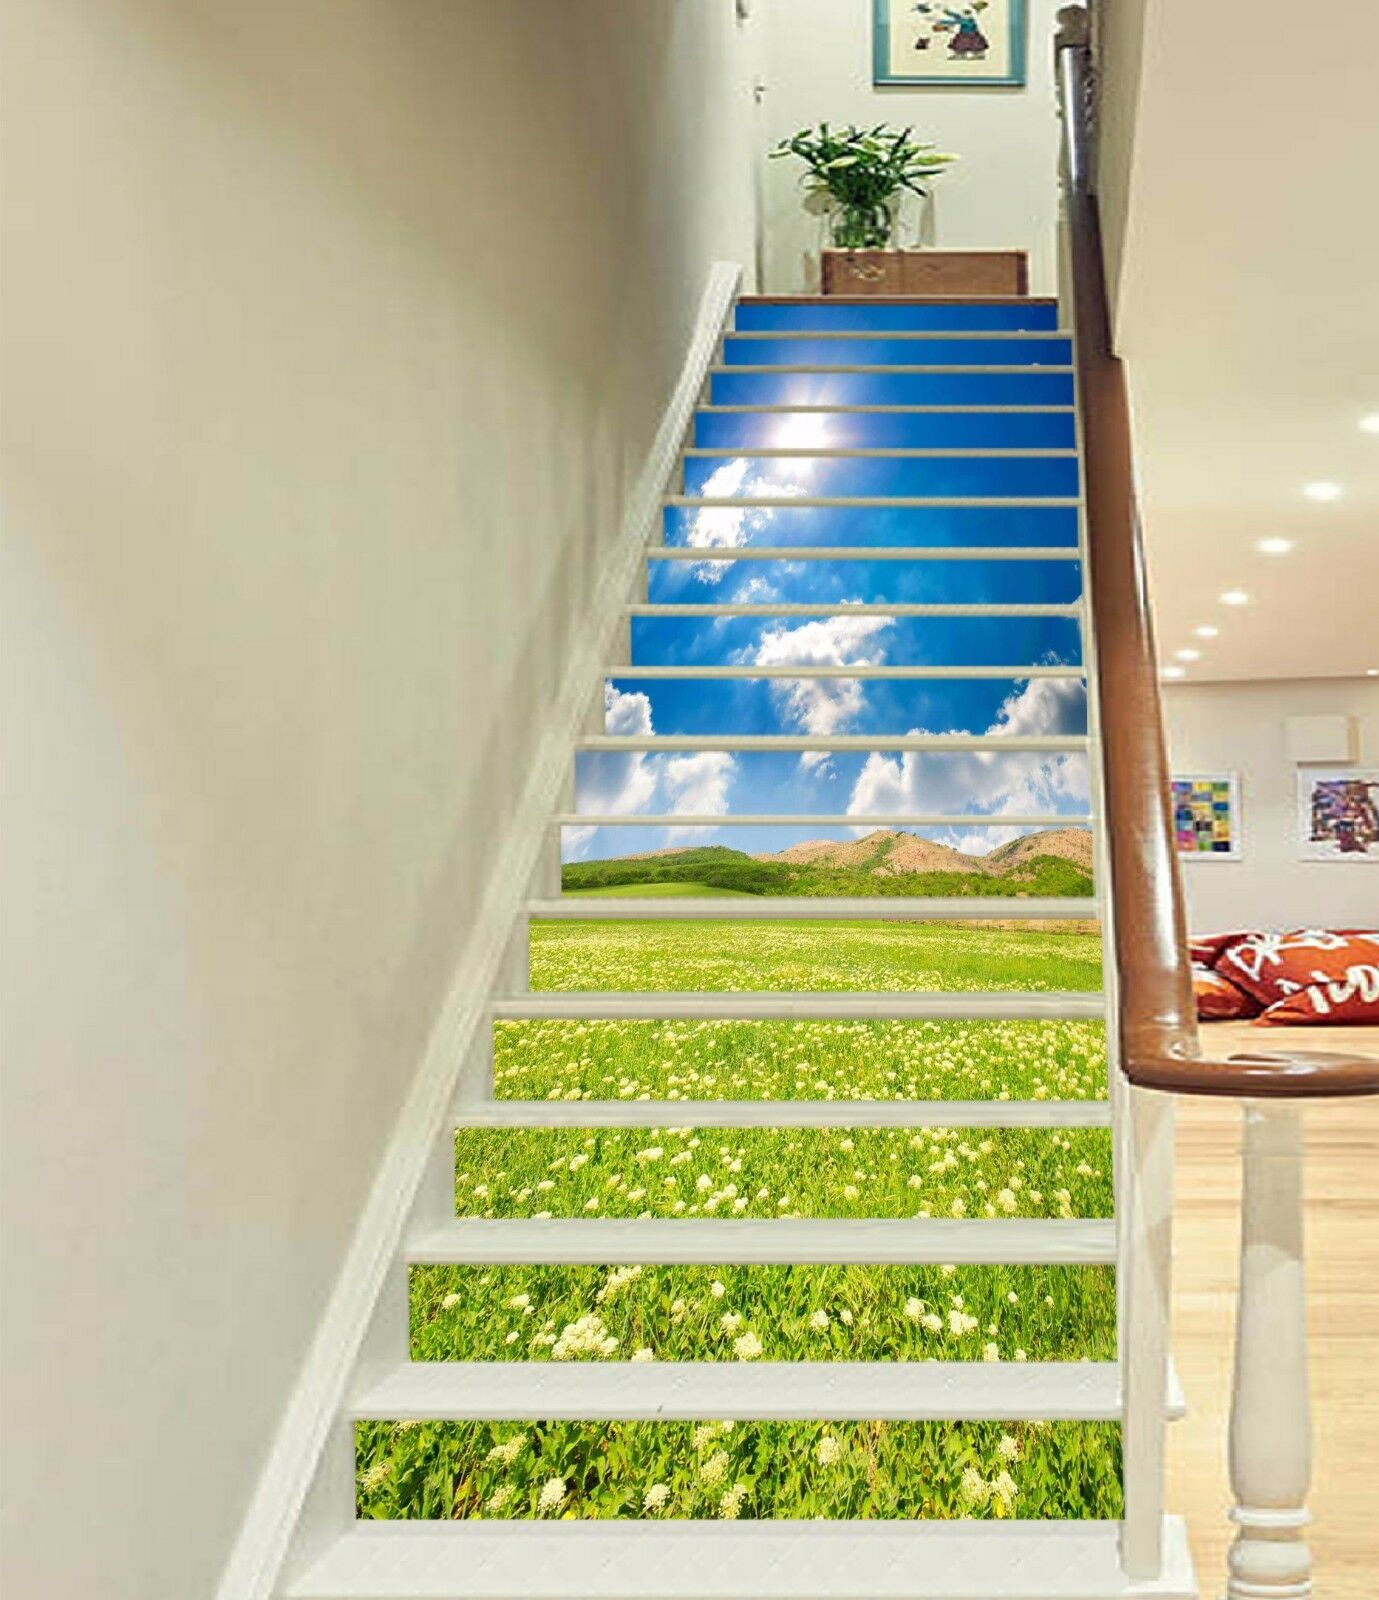 3D Grass Sky 665 Stair Risers Decoration Photo Mural Vinyl Decal Wallpaper UK